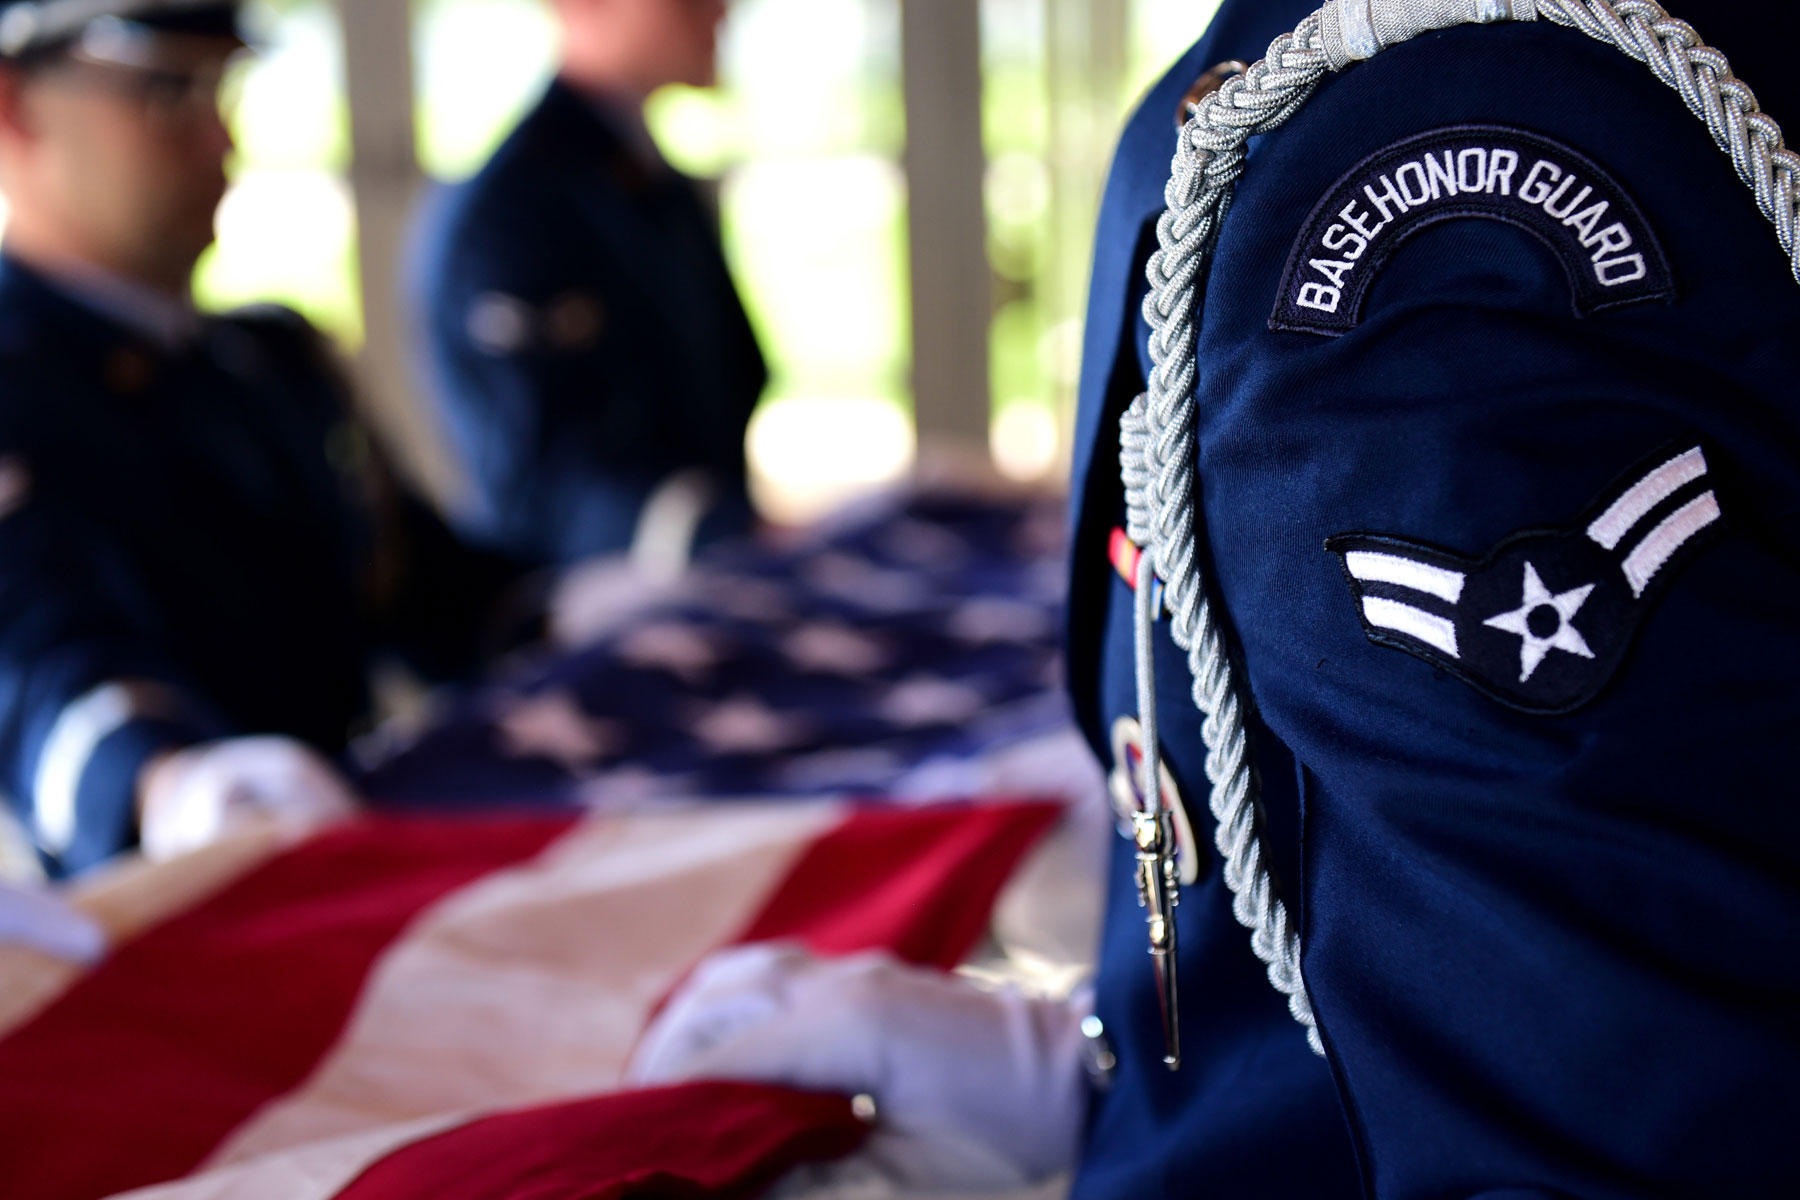 Thief Steals Car of Honor Guard Member During Funeral